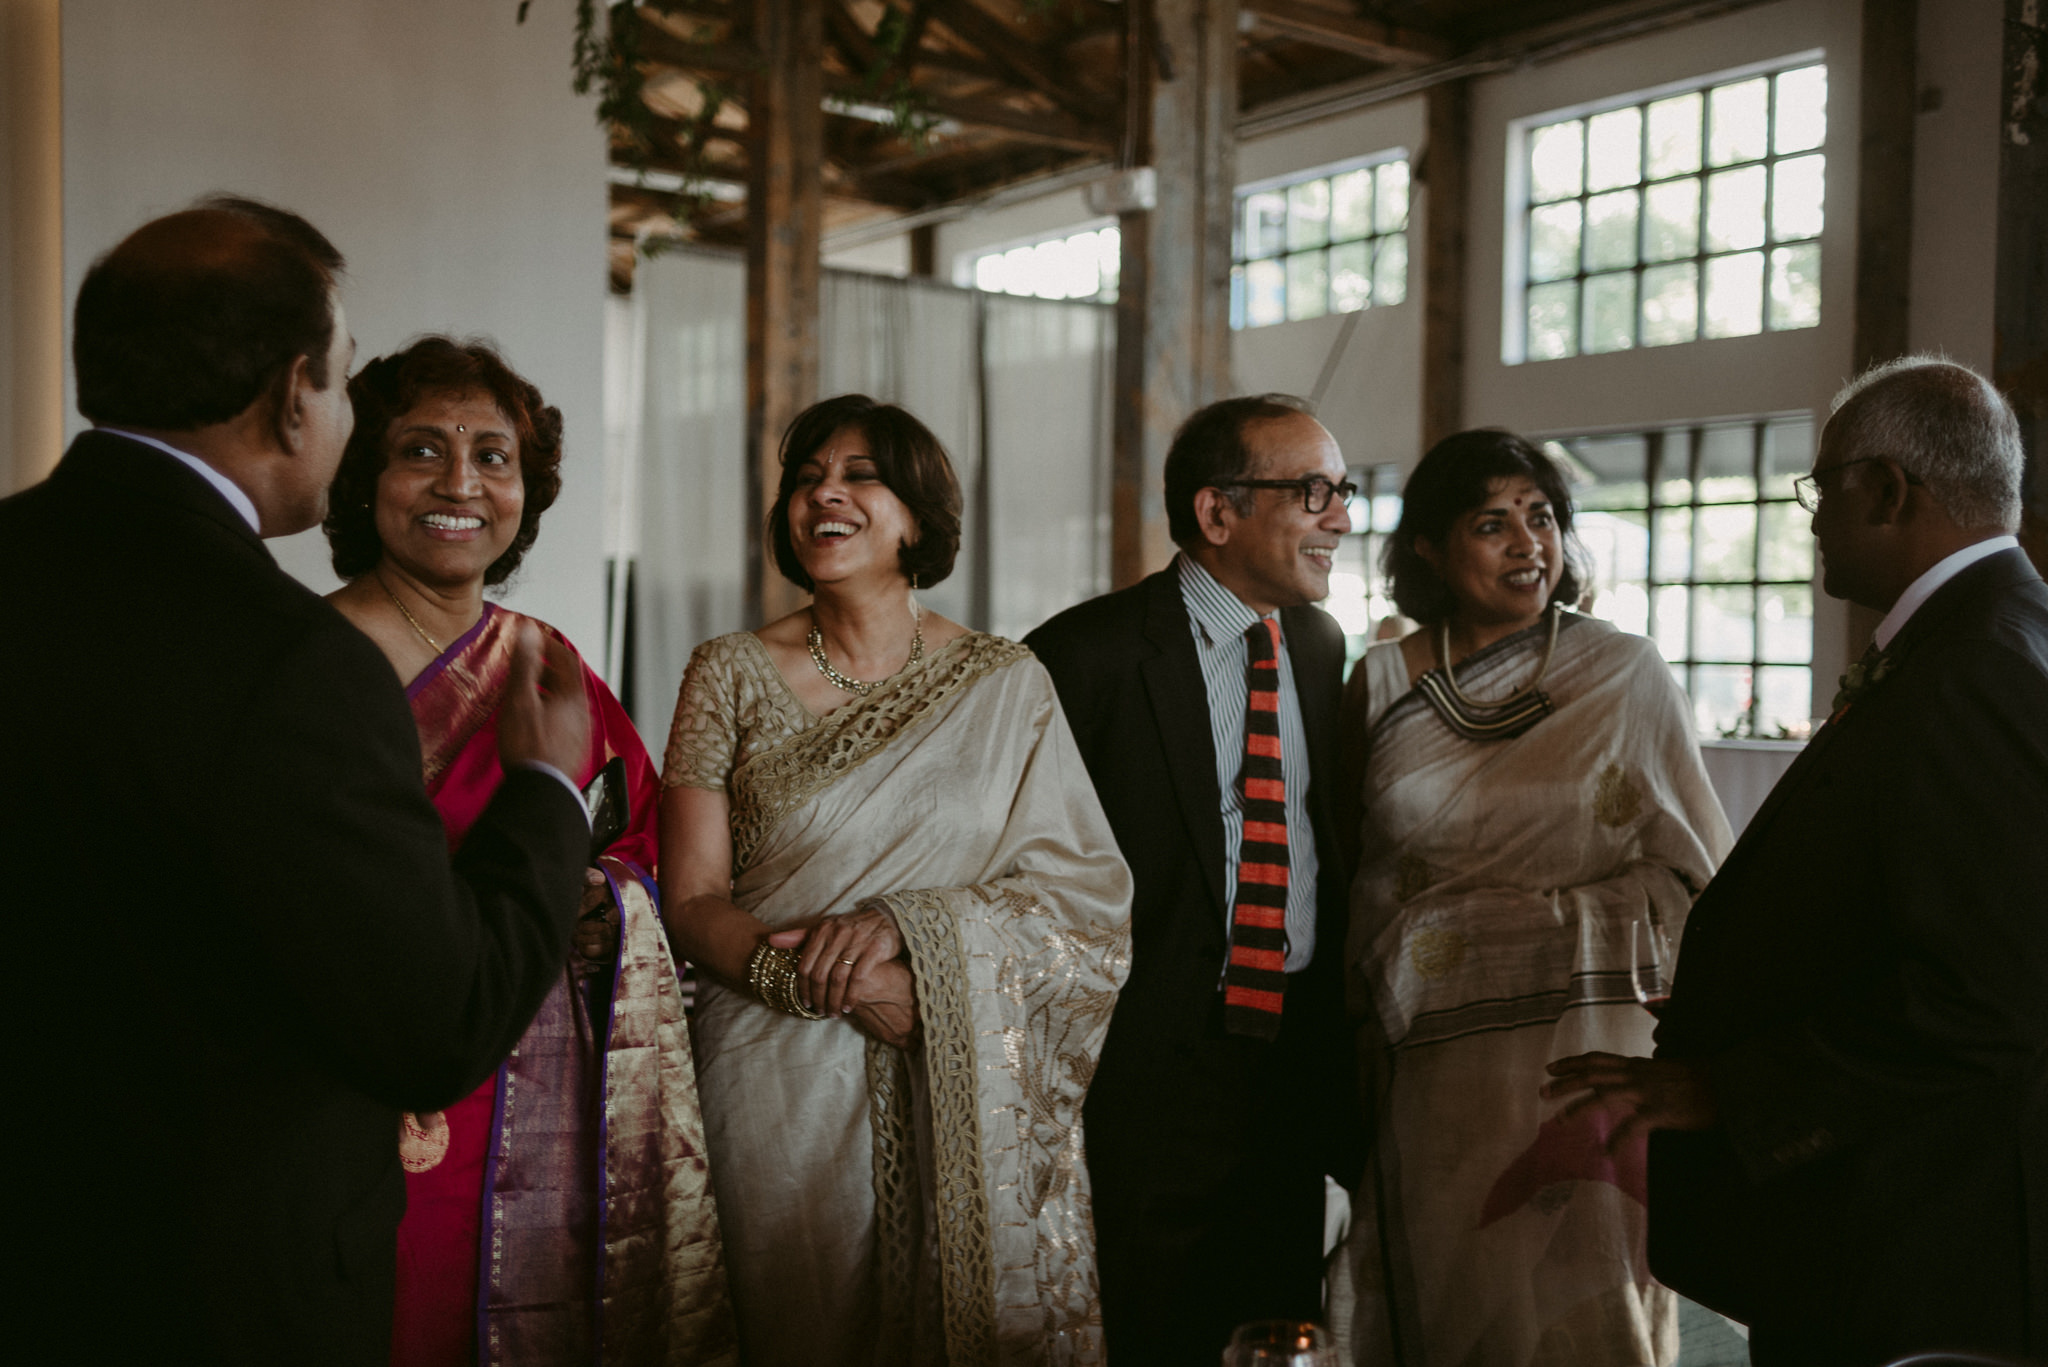 indian guests in saris laughing and talking during wedding reception